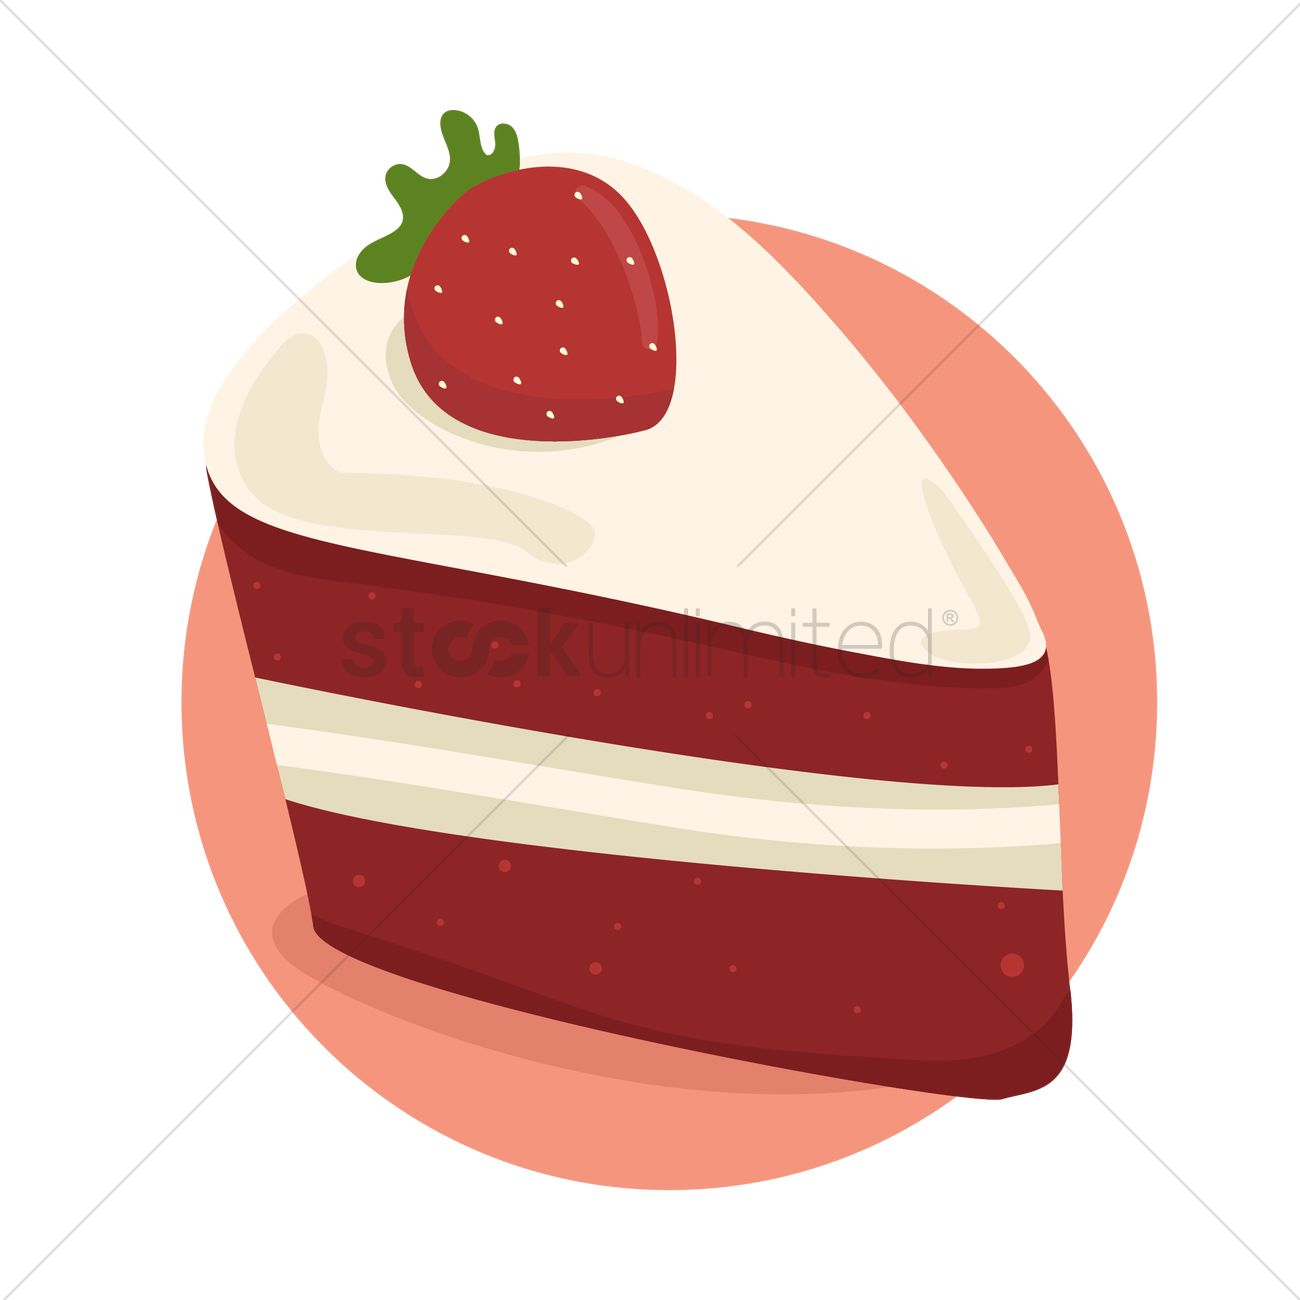 Clipart Cake Slice The Cliparts Databases Cake Slice Clipart Strawberry Cake Slice Vector Image  Stockunlimited